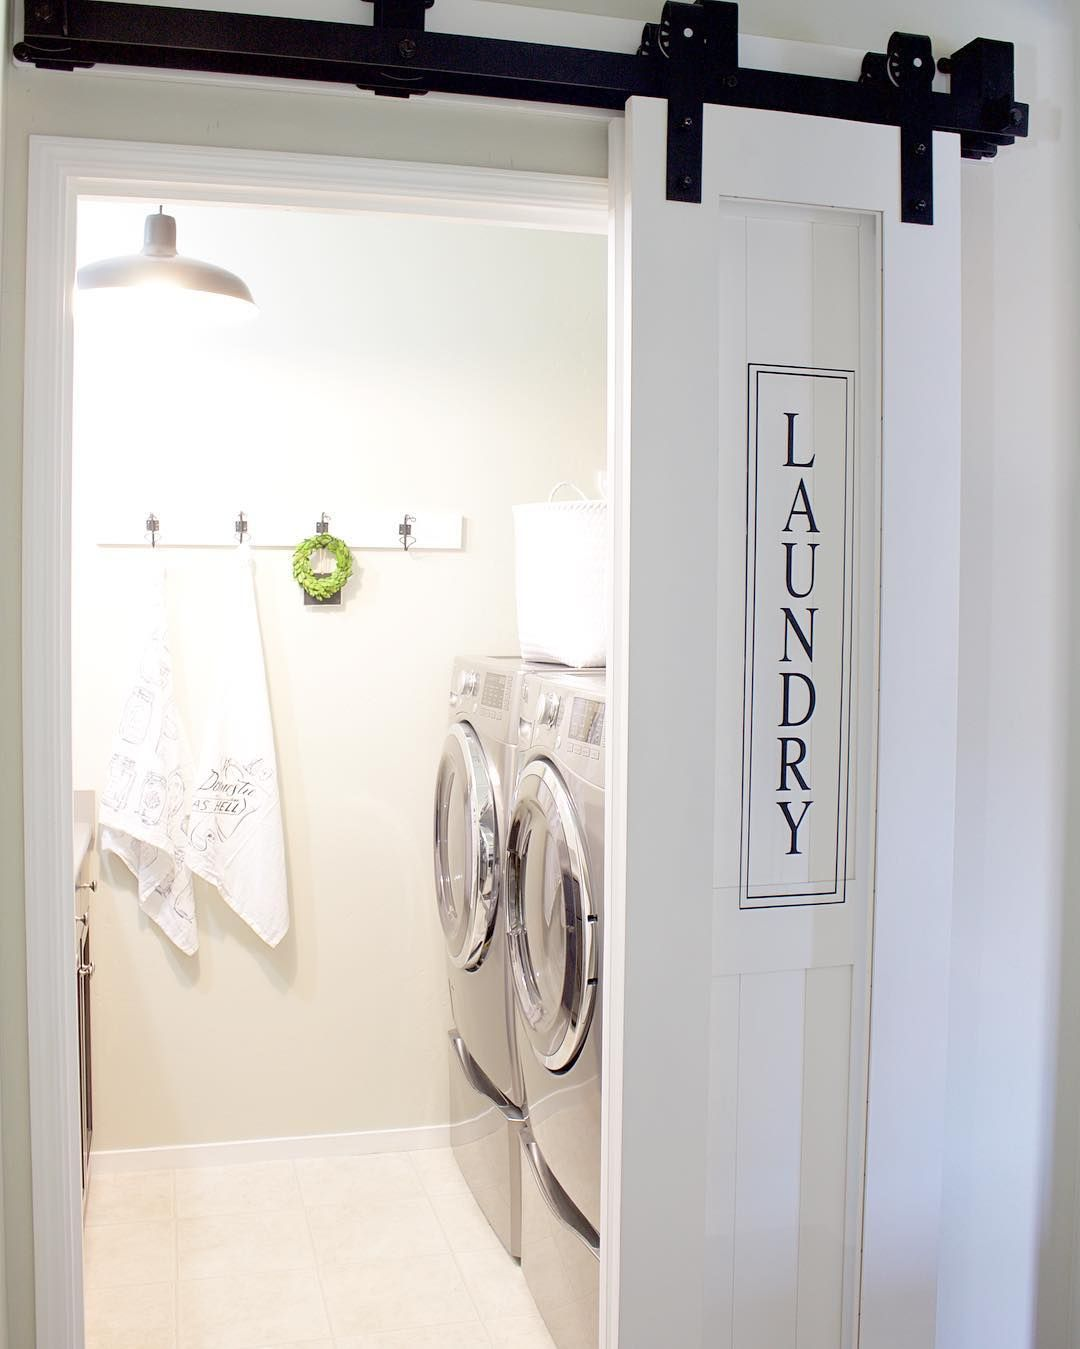 Rustica Hardware On Instagram Soul Comes From Filling Your Home With Items That You Cherish A Basement Laundry Room Laundry Room Remodel Laundry In Bathroom